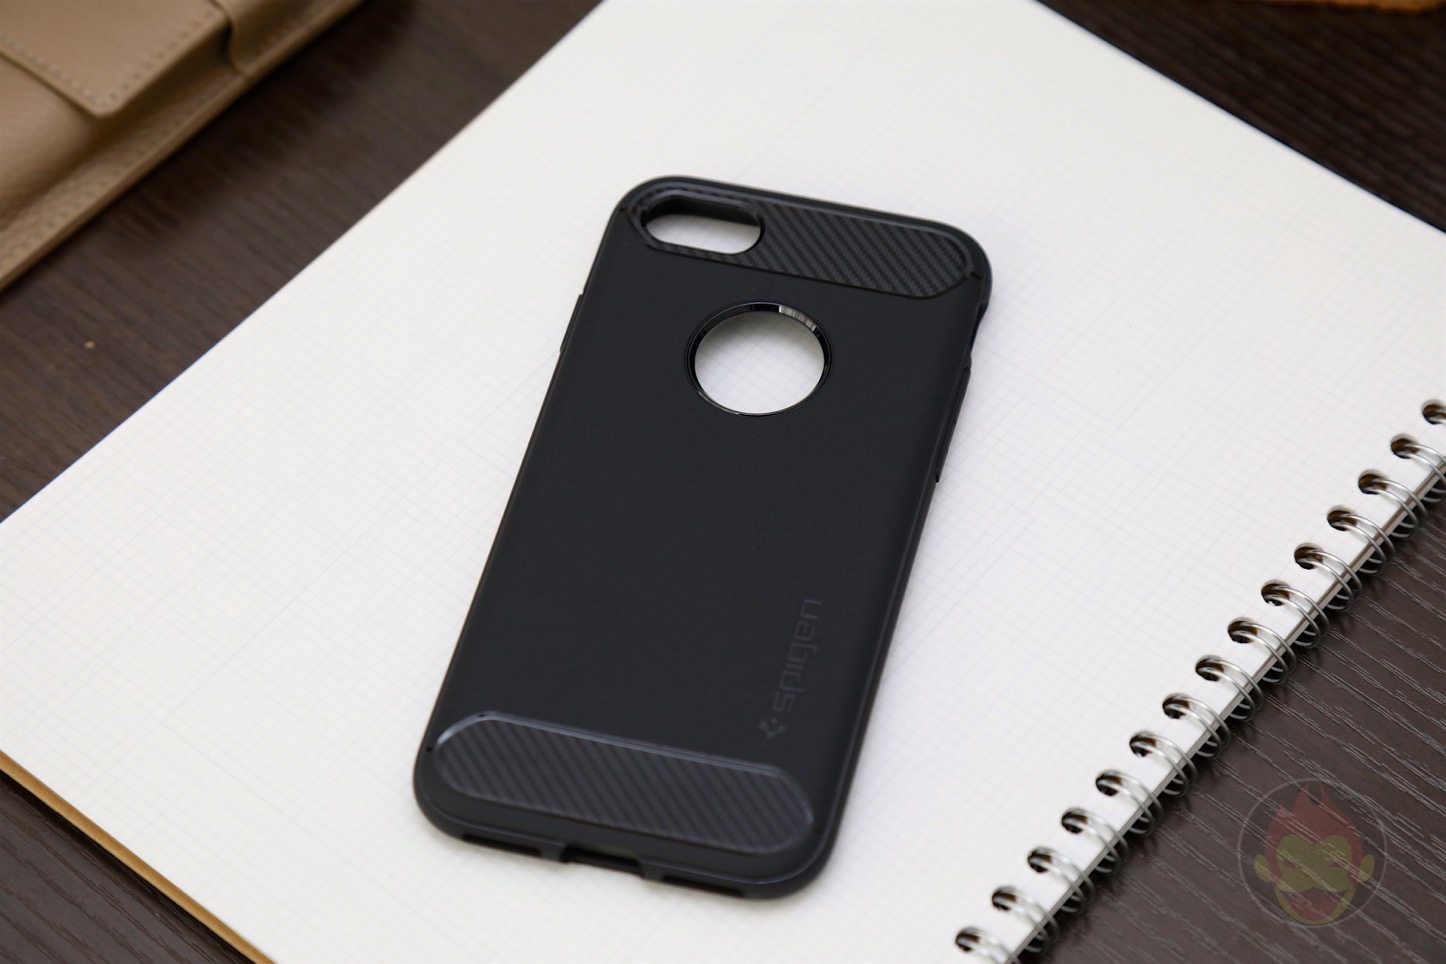 Rugged-Armor-for-iPhone7-7Plus-01.jpg